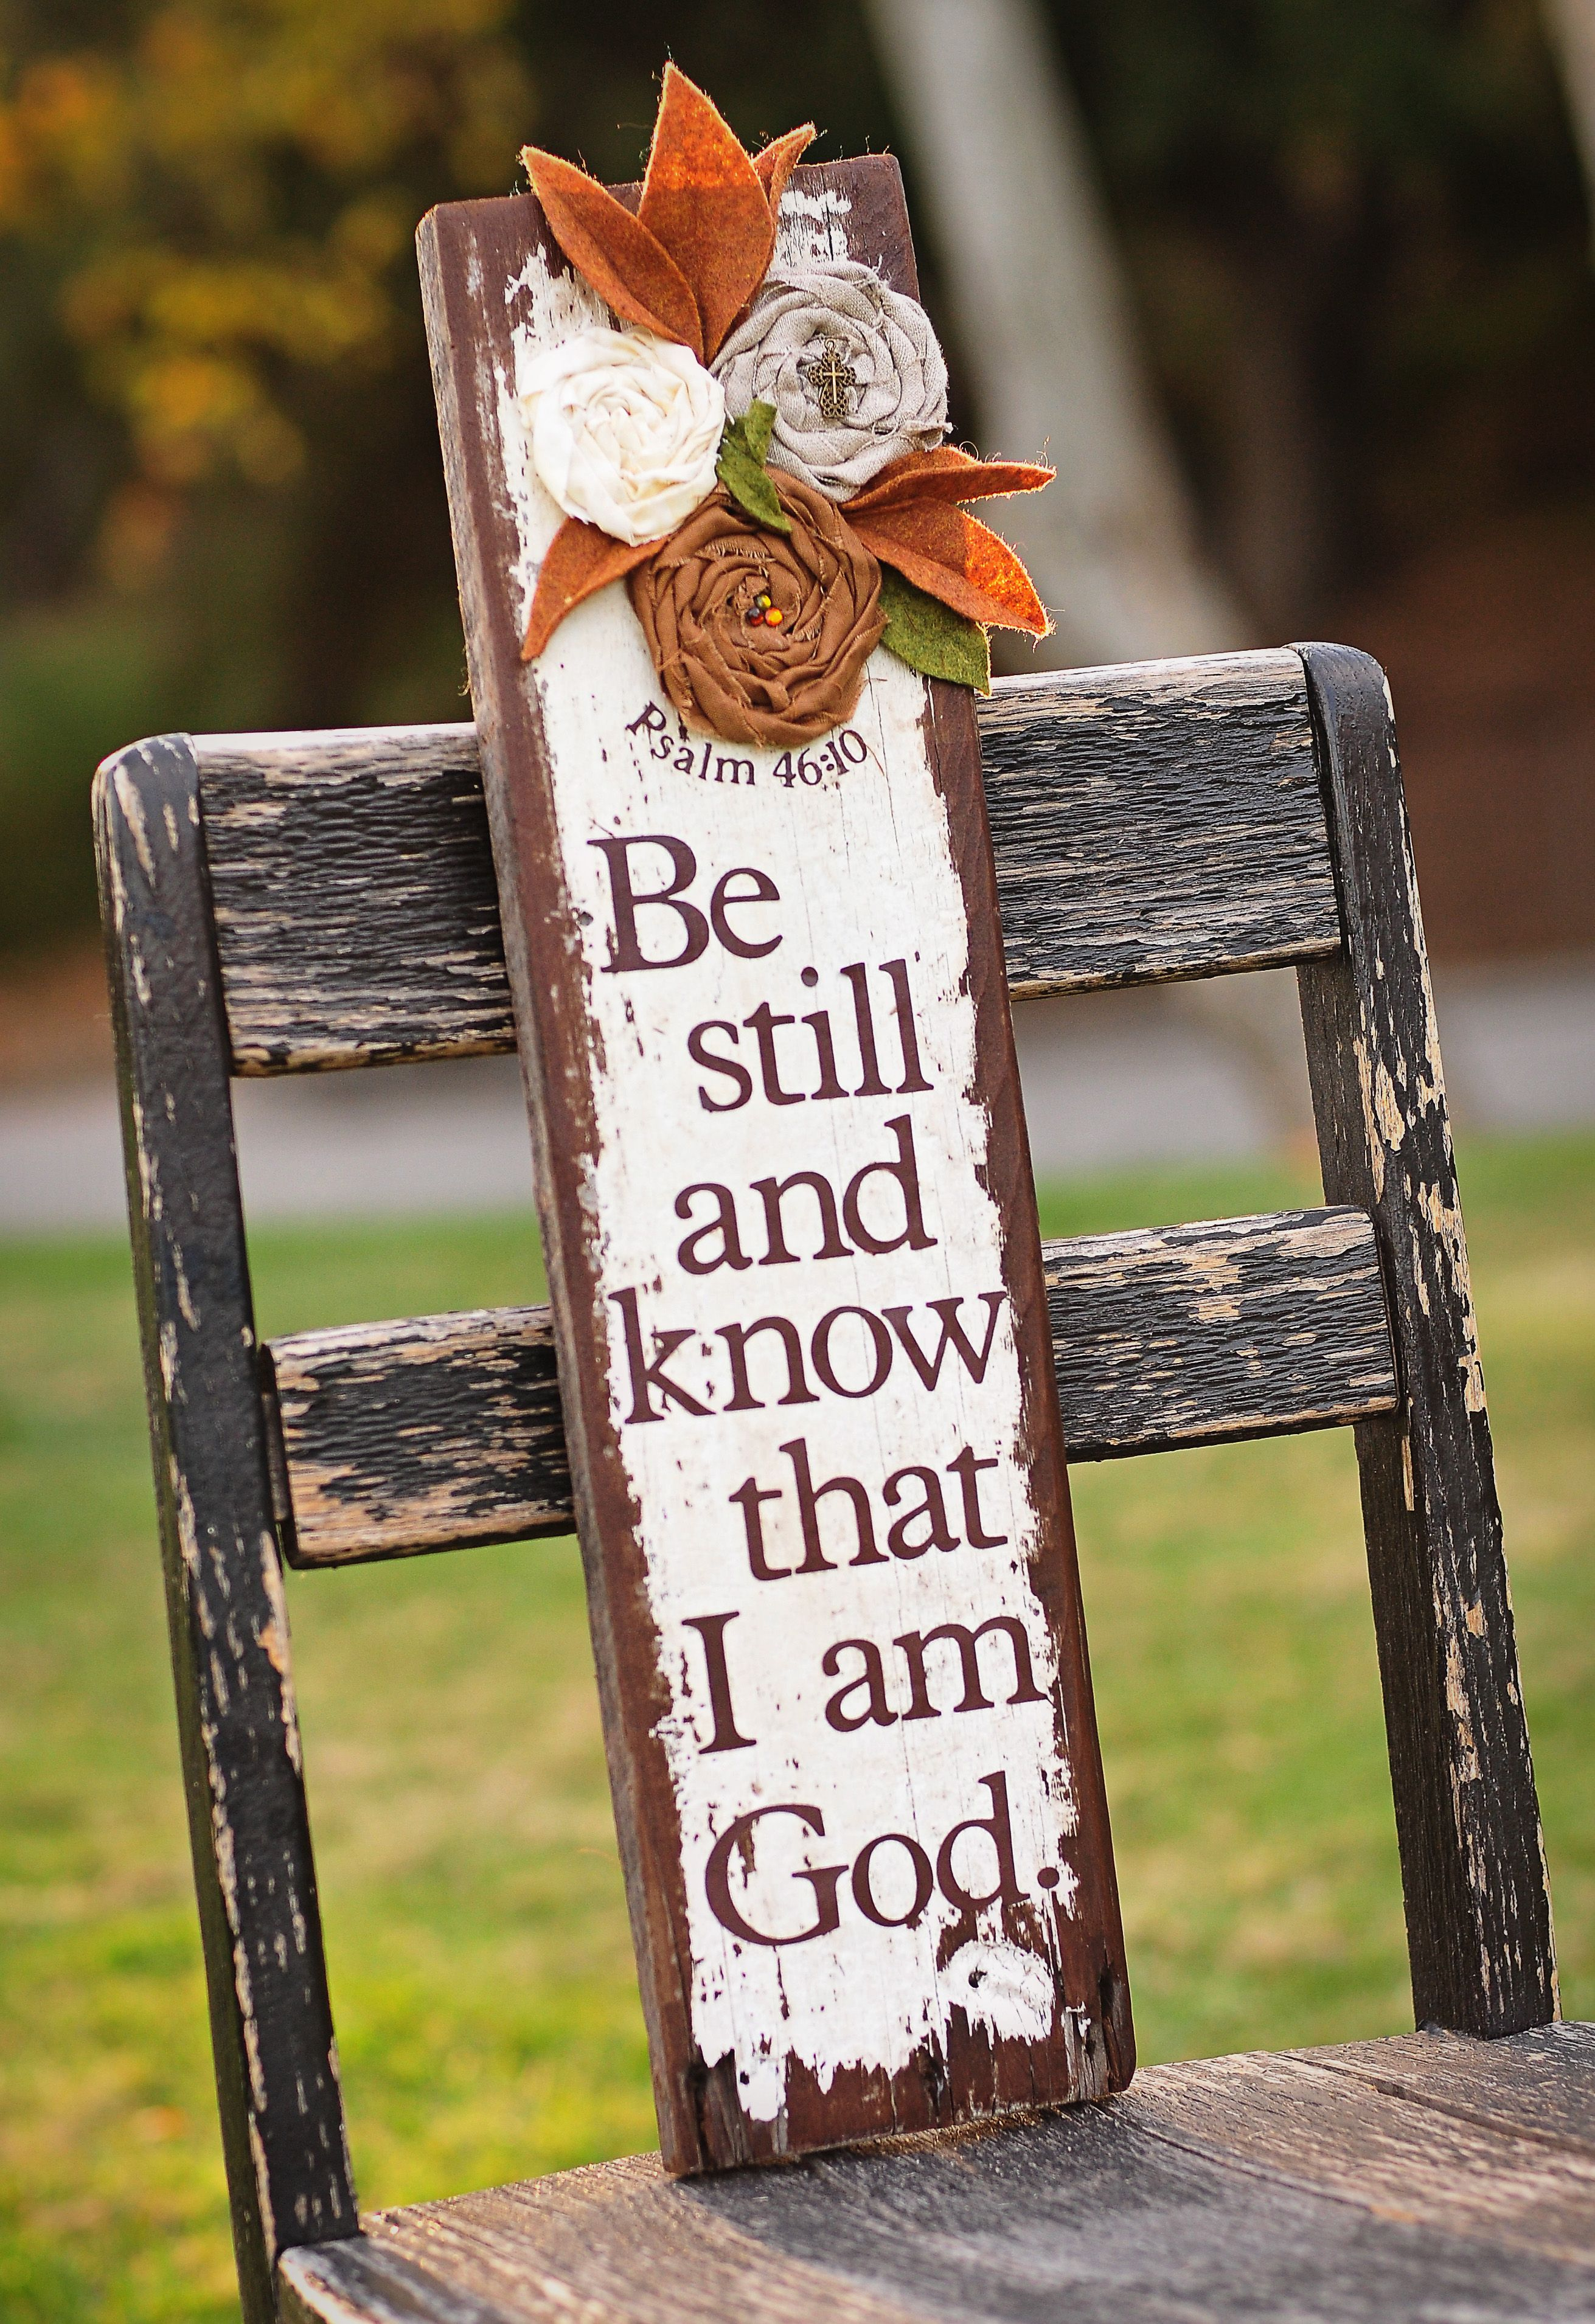 Facebook Page Rugged Cross Scripture Signs Crafts Scripture